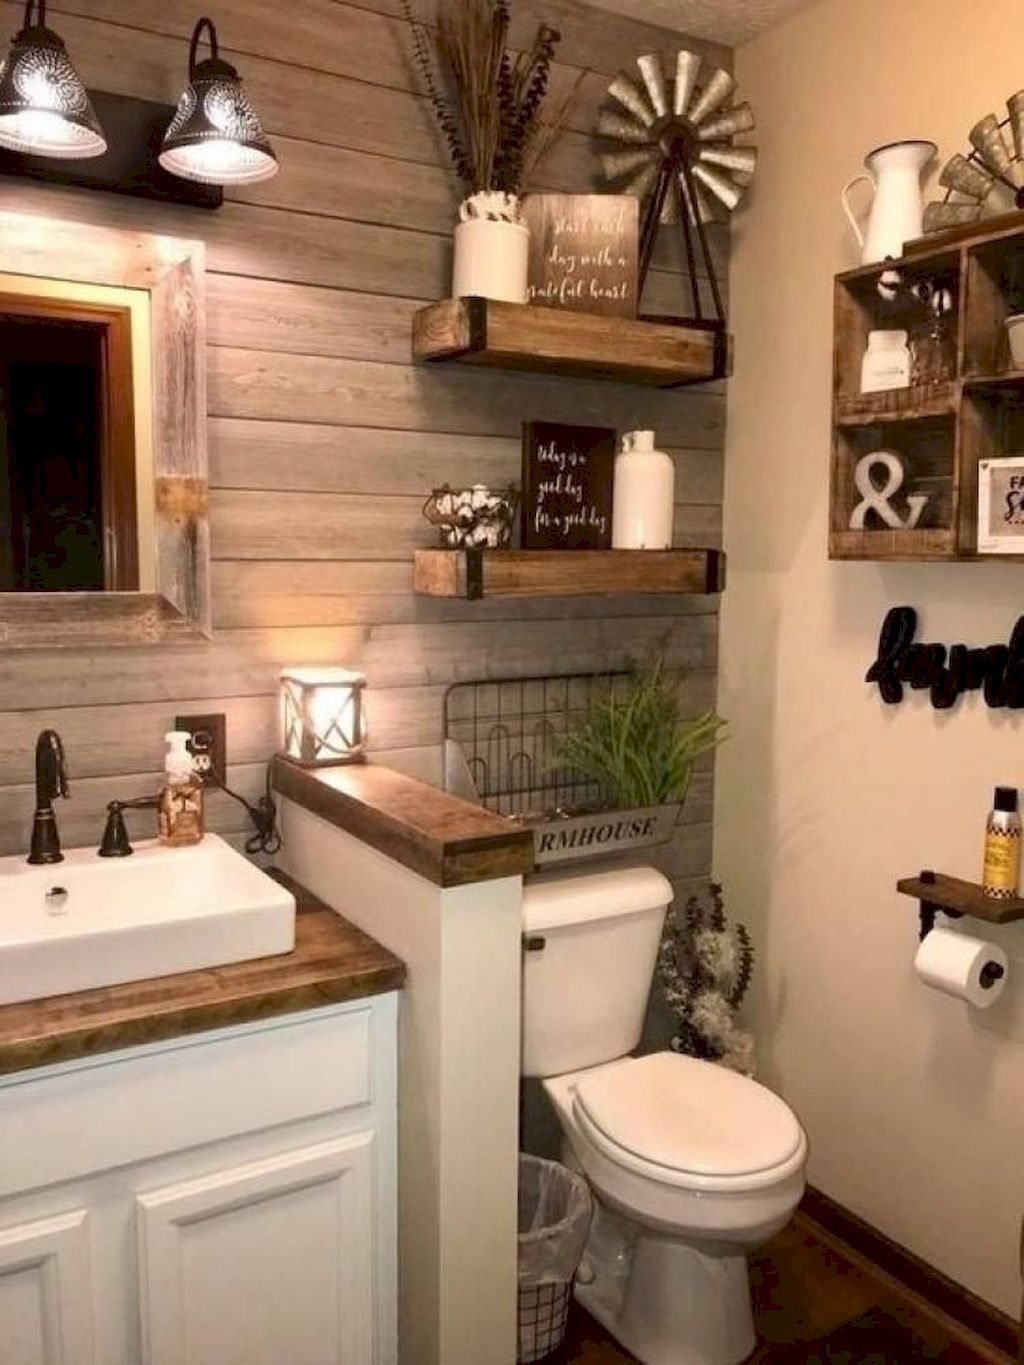 100 Small Bathroom Remodel Design Ideas On A Budget Home Design Farmhouse Bathroom Decor Bathroom Remodel Master Bathroom Decor